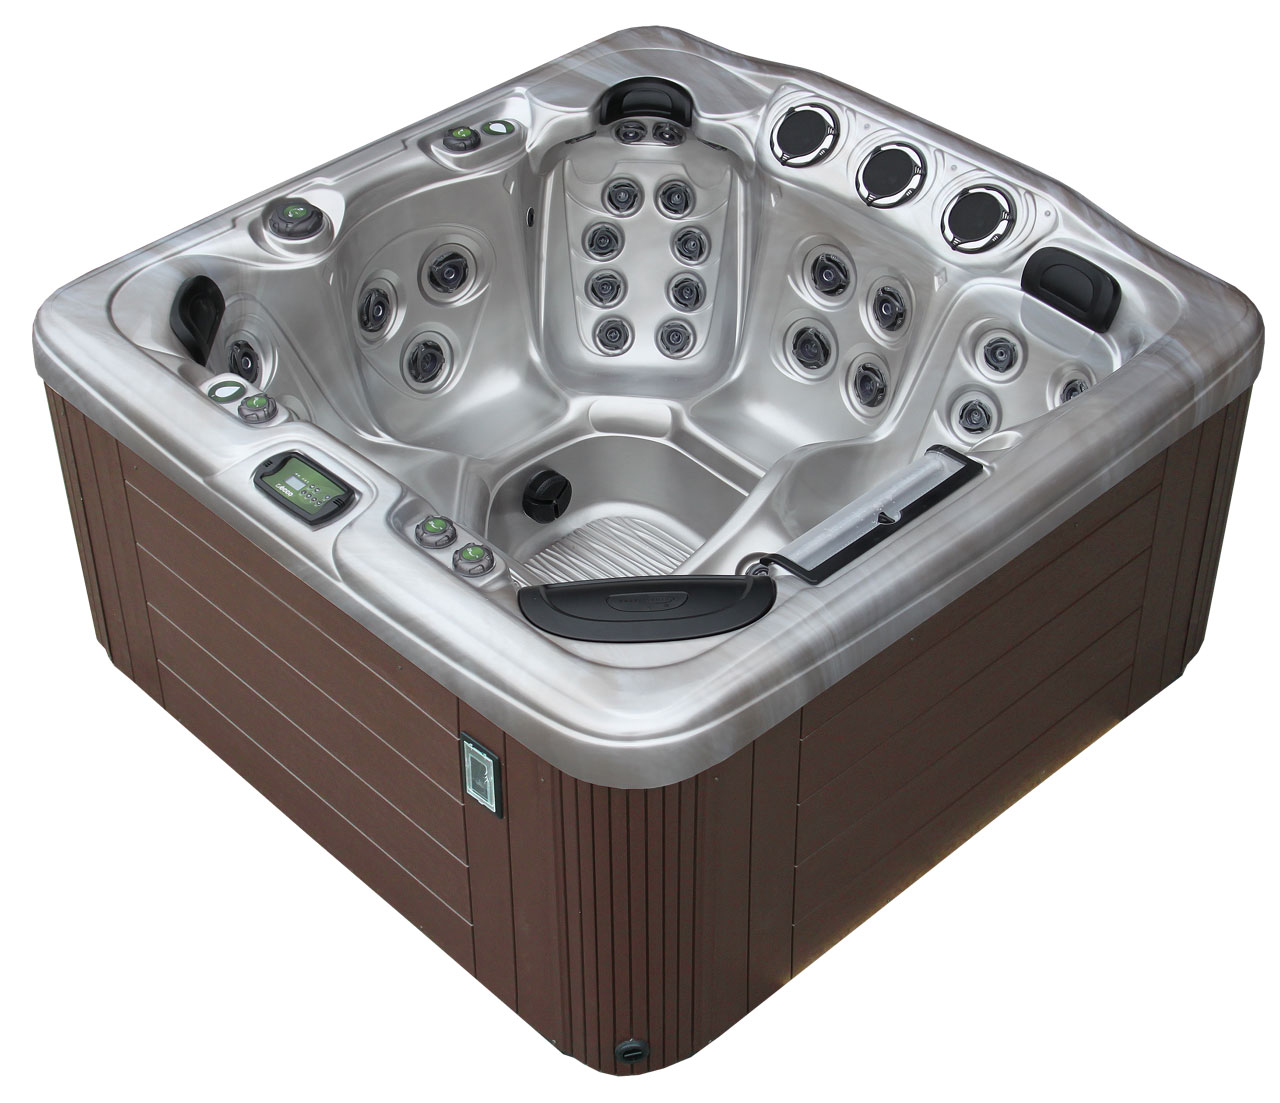 rotary spot the precision pool directional features tubs spring jets targeted jet to and gallery including tempo hot hydromassage spas fort lifestyle tub wayne patio